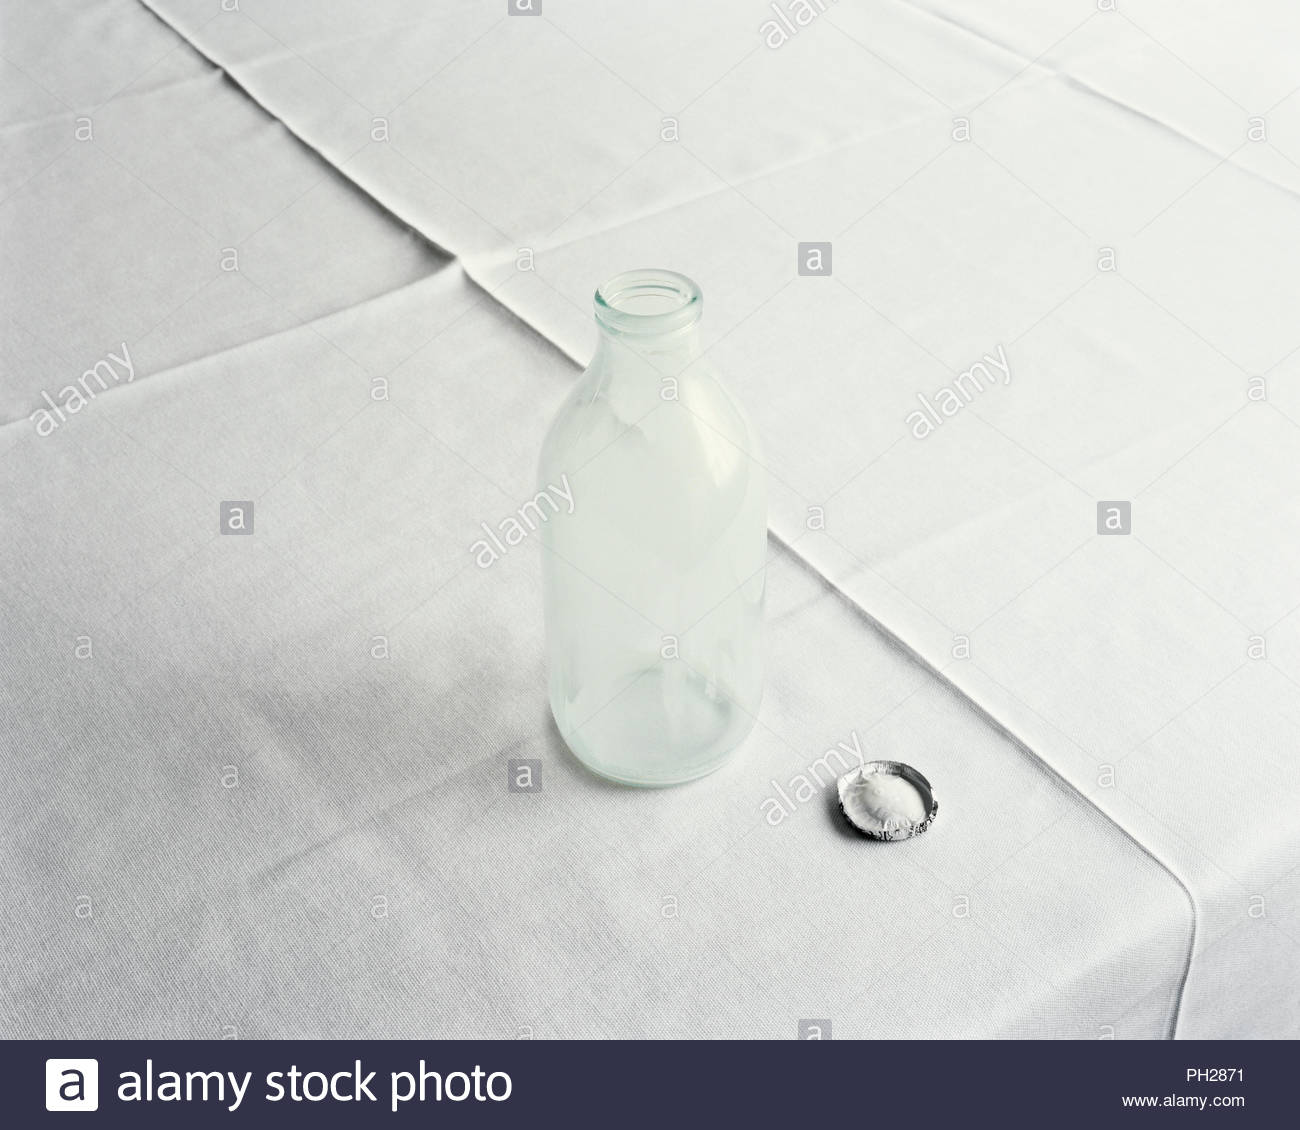 Bouteille de lait vide sur la table Photo Stock